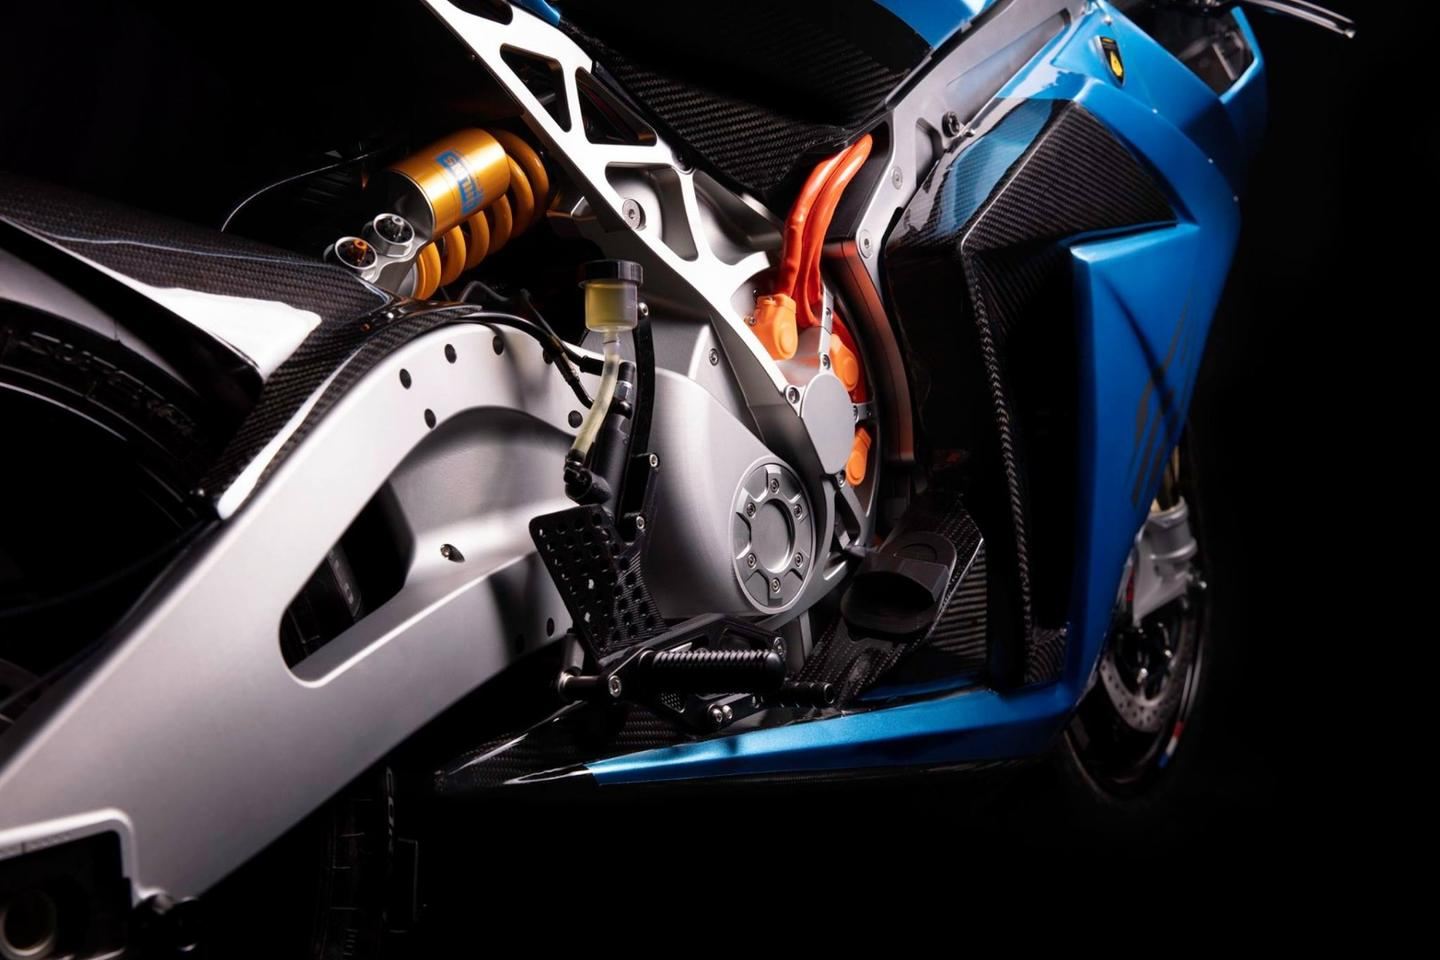 The Carbon Edition gets Ohlins suspension